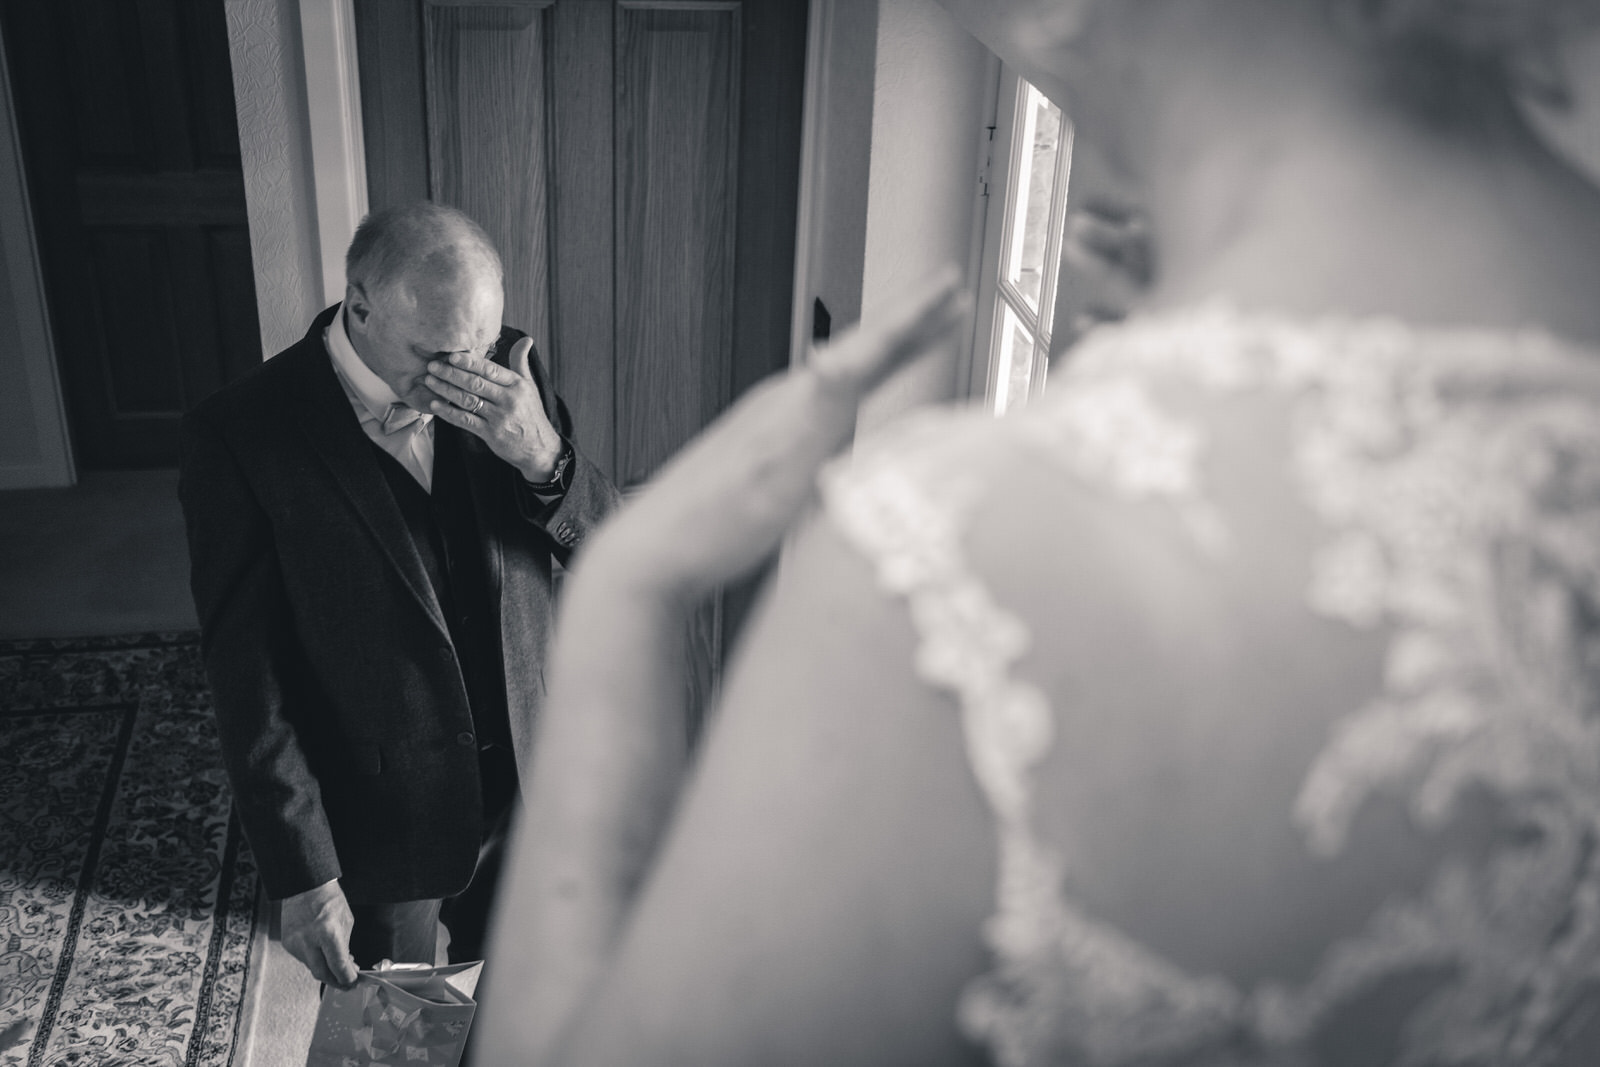 leeds-yorkshire-wedding-photographer-candid-emothion 2.jpg